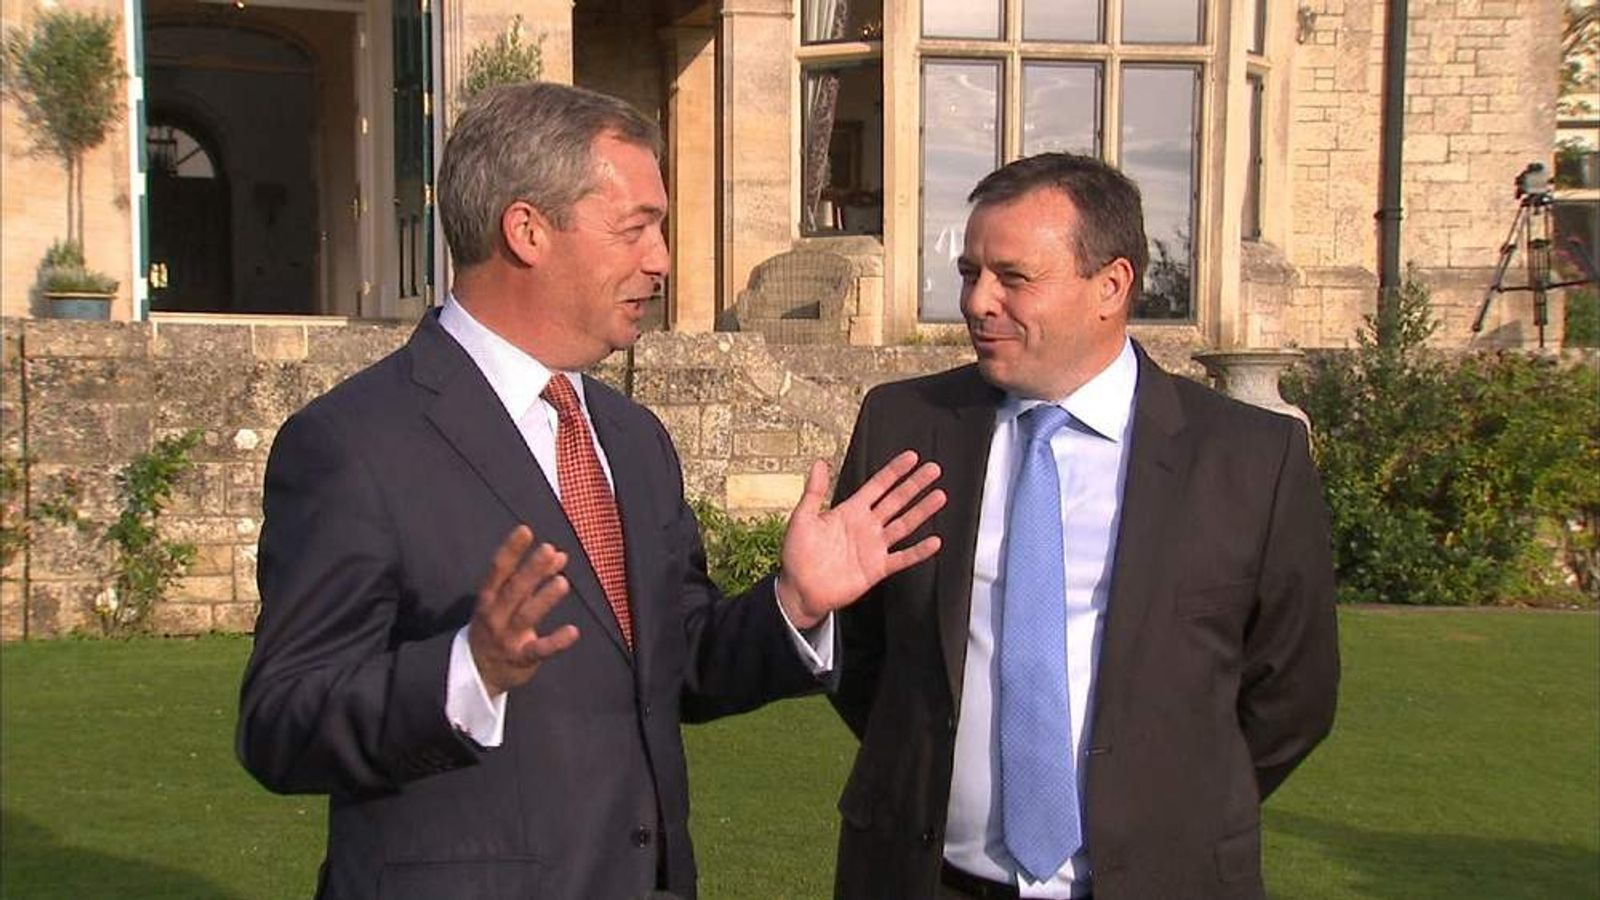 Nigel farage welcomes a £1 million donation from Arron Banks